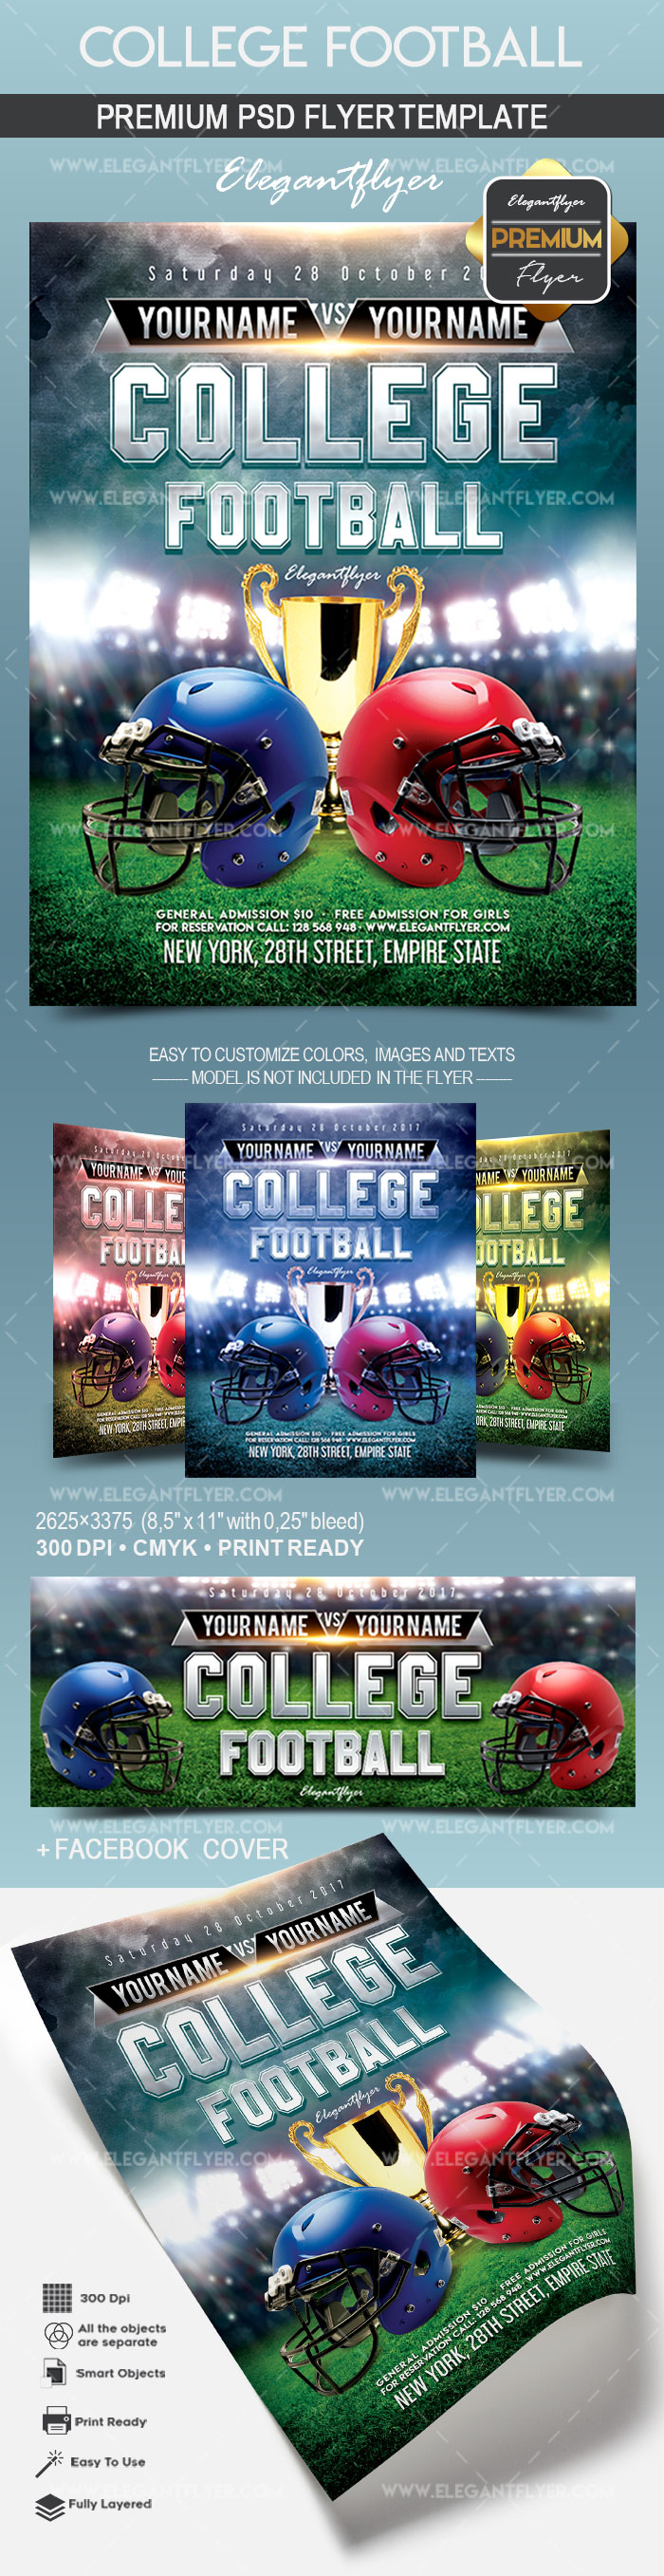 College Football Flyer PSD Template